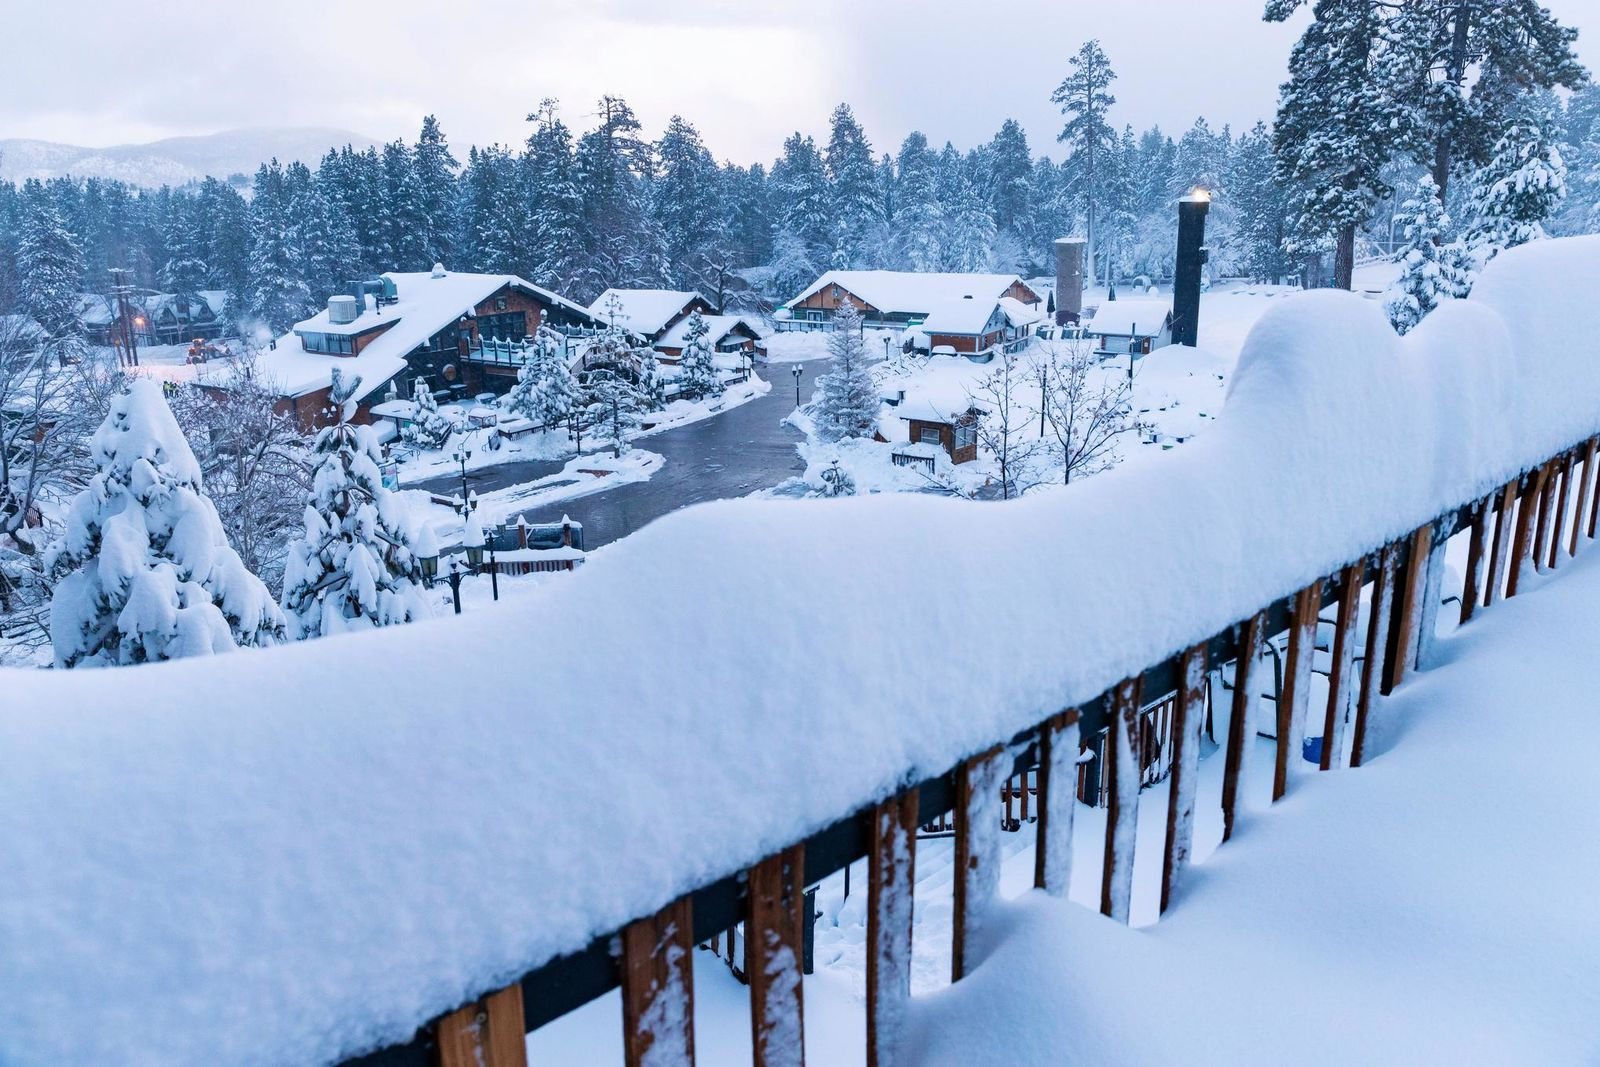 This photo provided by Big Bear Mountain Resort shows a fresh snow fall at Big Bear Mountain Resort in Big Bear Lake, Calif., Friday, Nov. 29, 2019. California is drenched or blanketed in snow after a powerful Thanksgiving storm. Rain and snow showers are continuing in parts of the state Friday, Nov. 29, 2019, while skies are clearing elsewhere. (Big Bear Mountain Resort via AP)